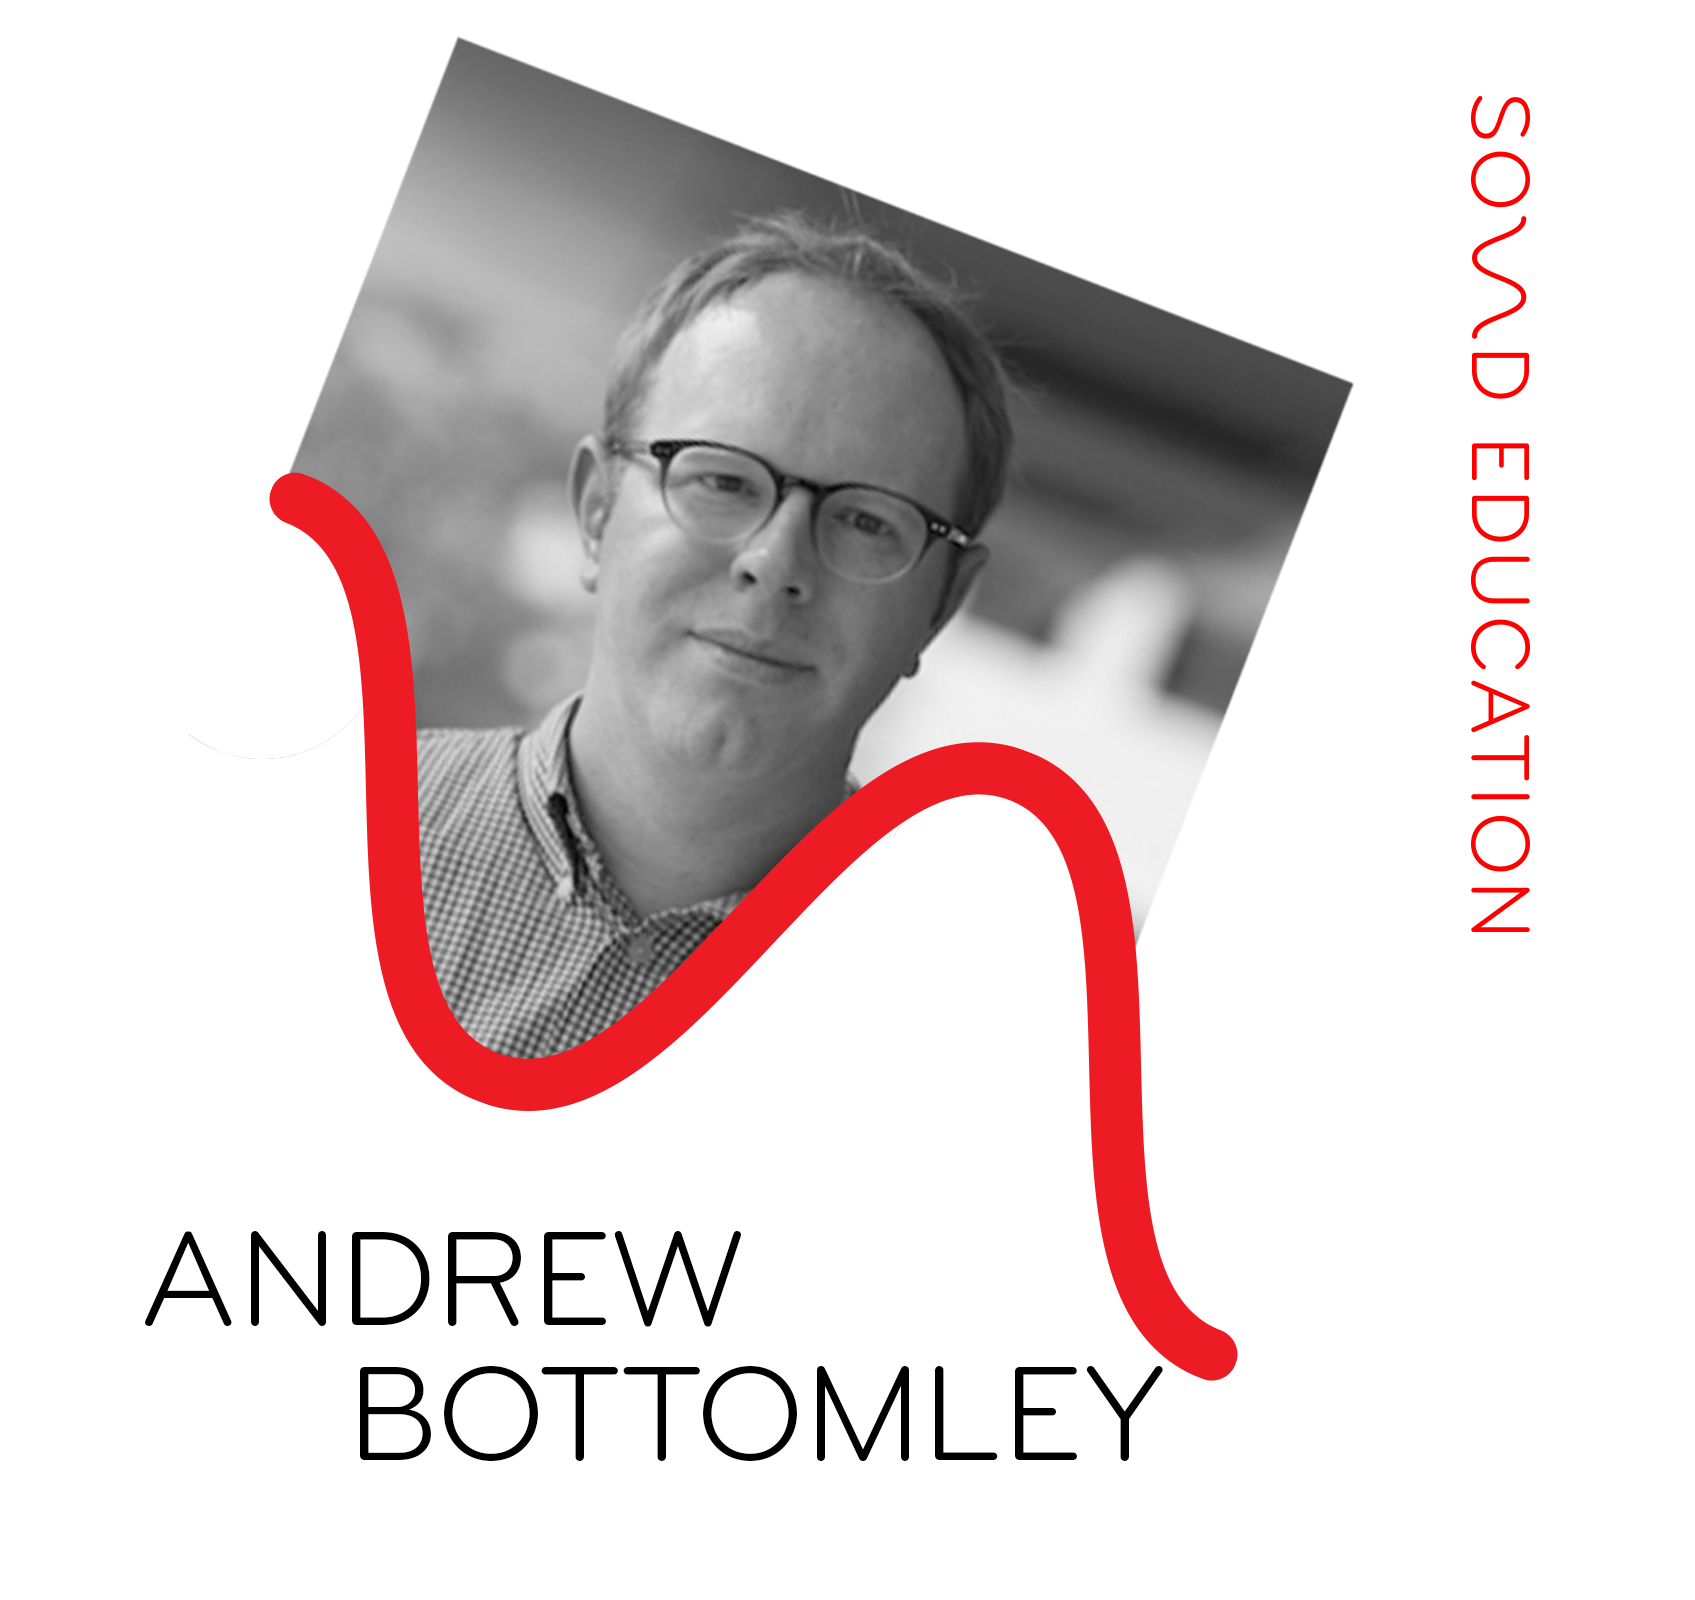 bottomley_andrew.png